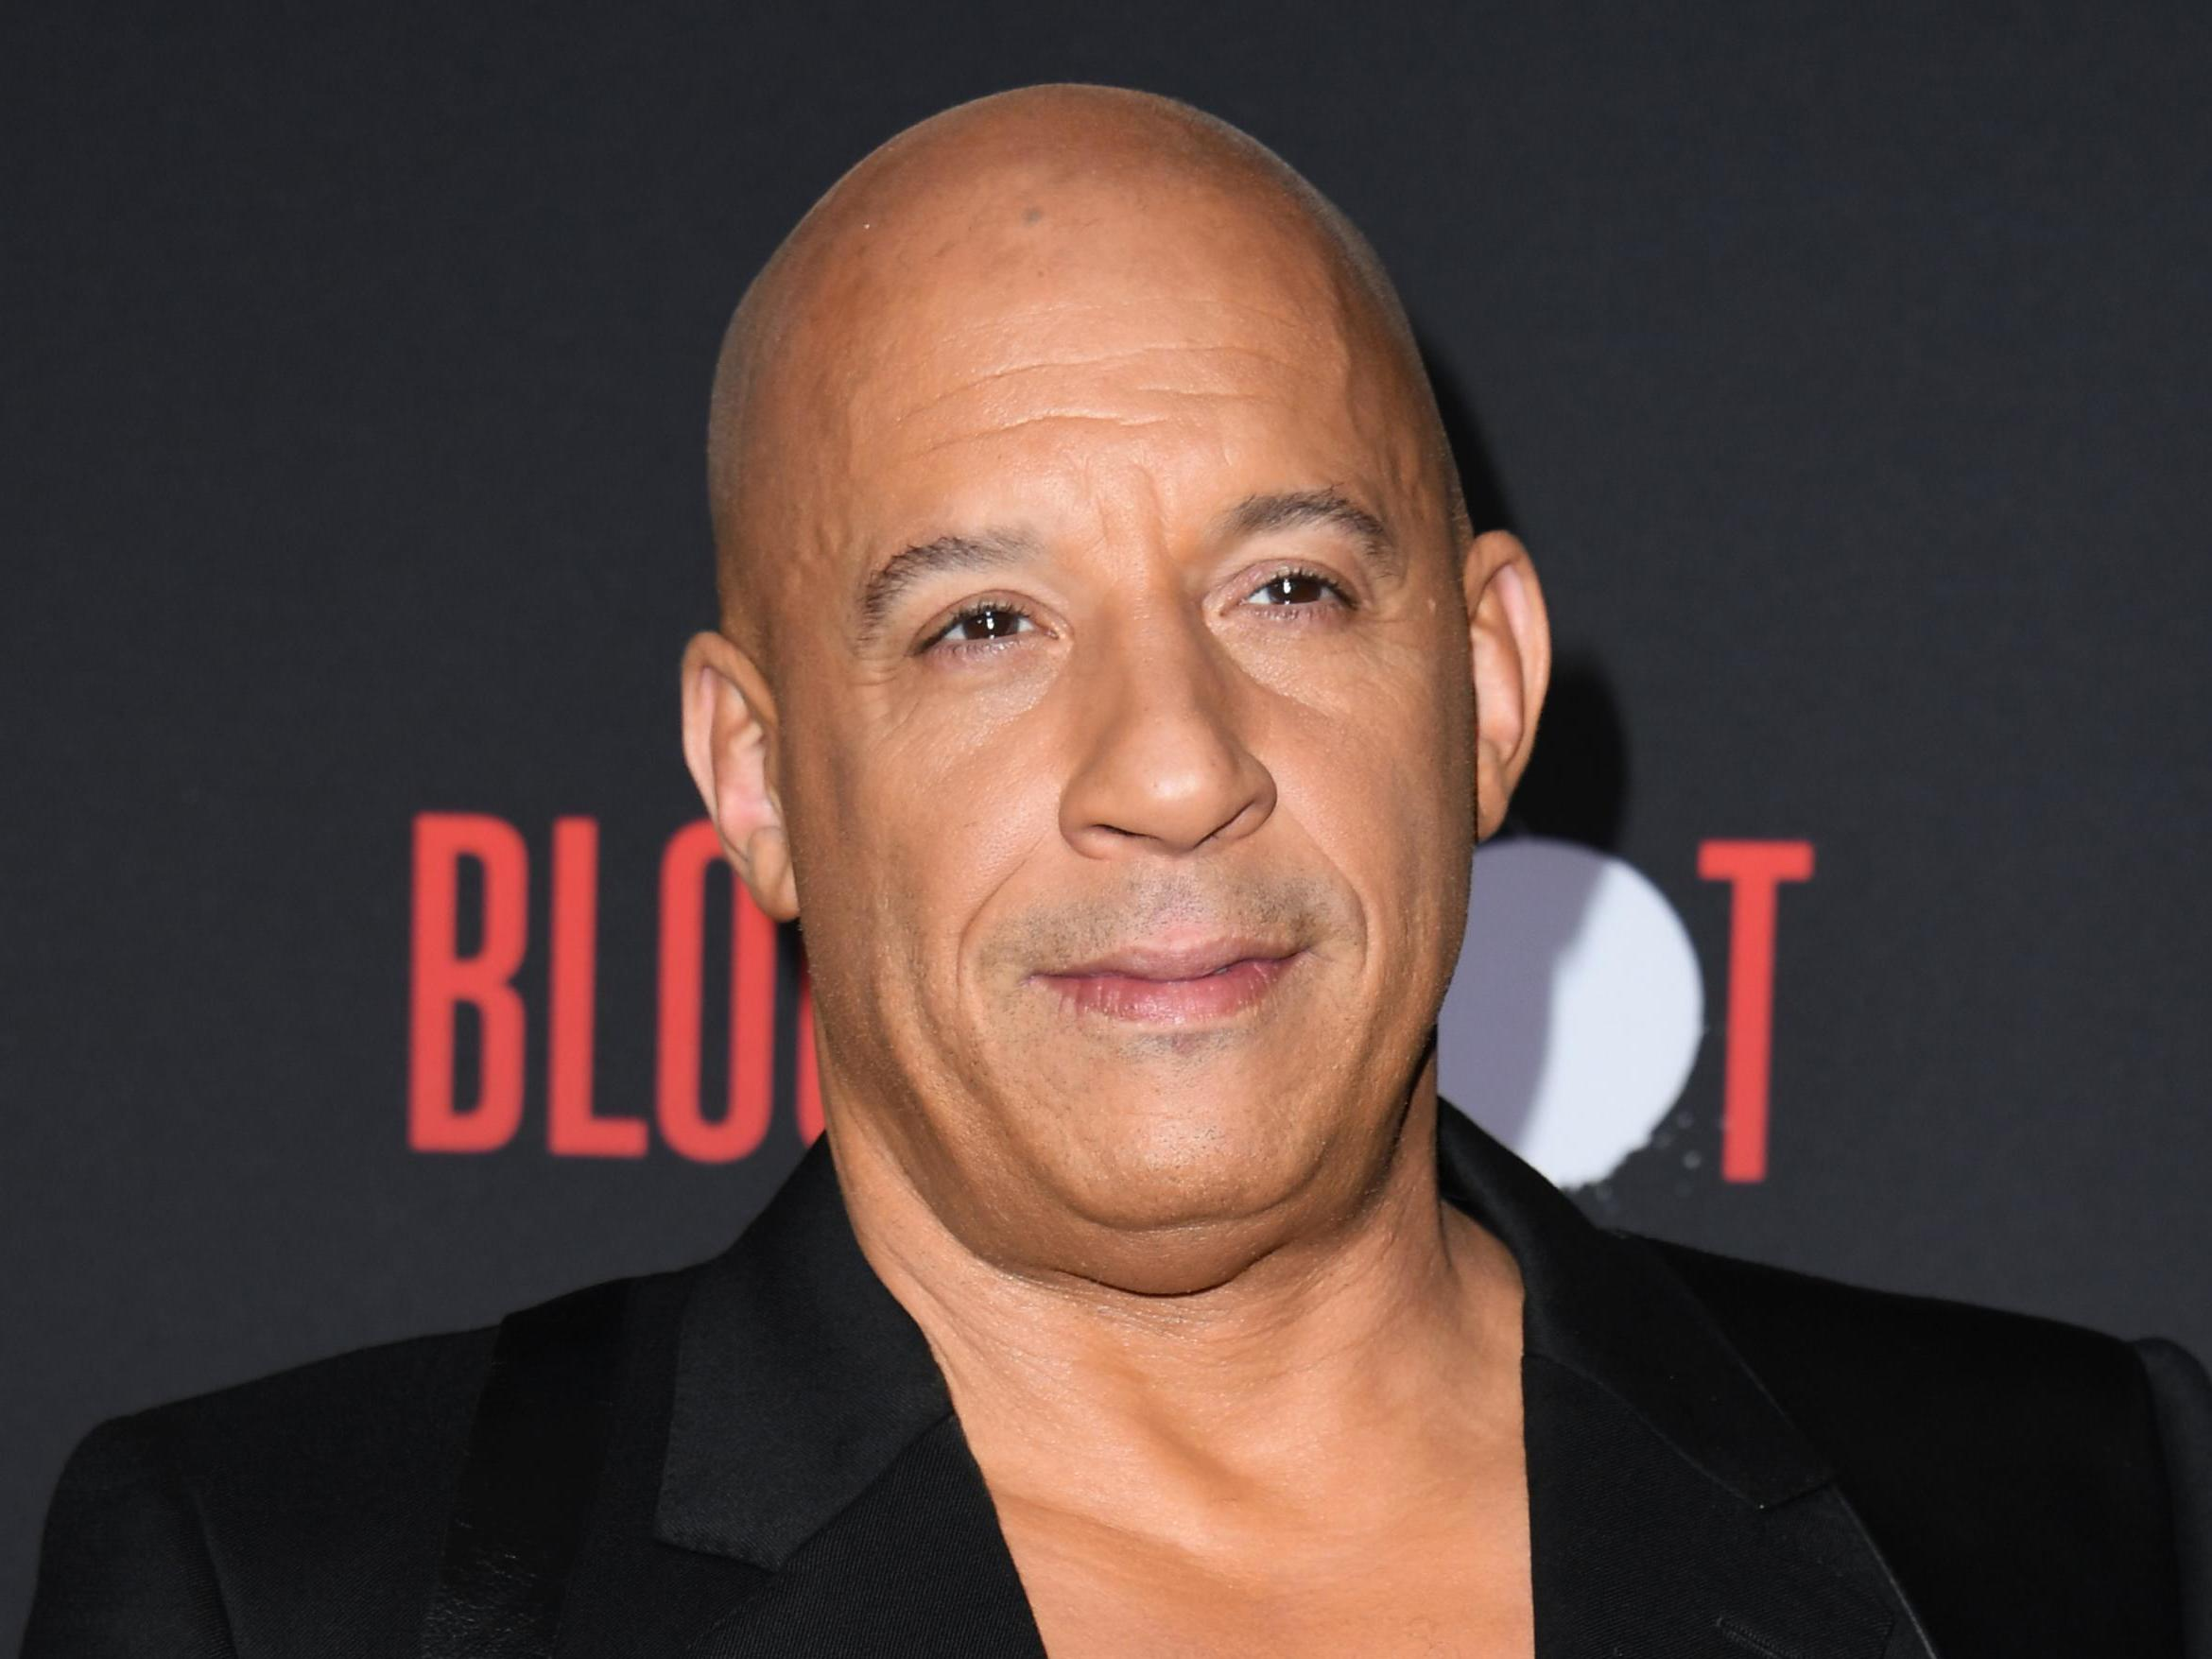 What is Vin Diesel's Net Worth? The Success Story of the Fast & Furious Actor